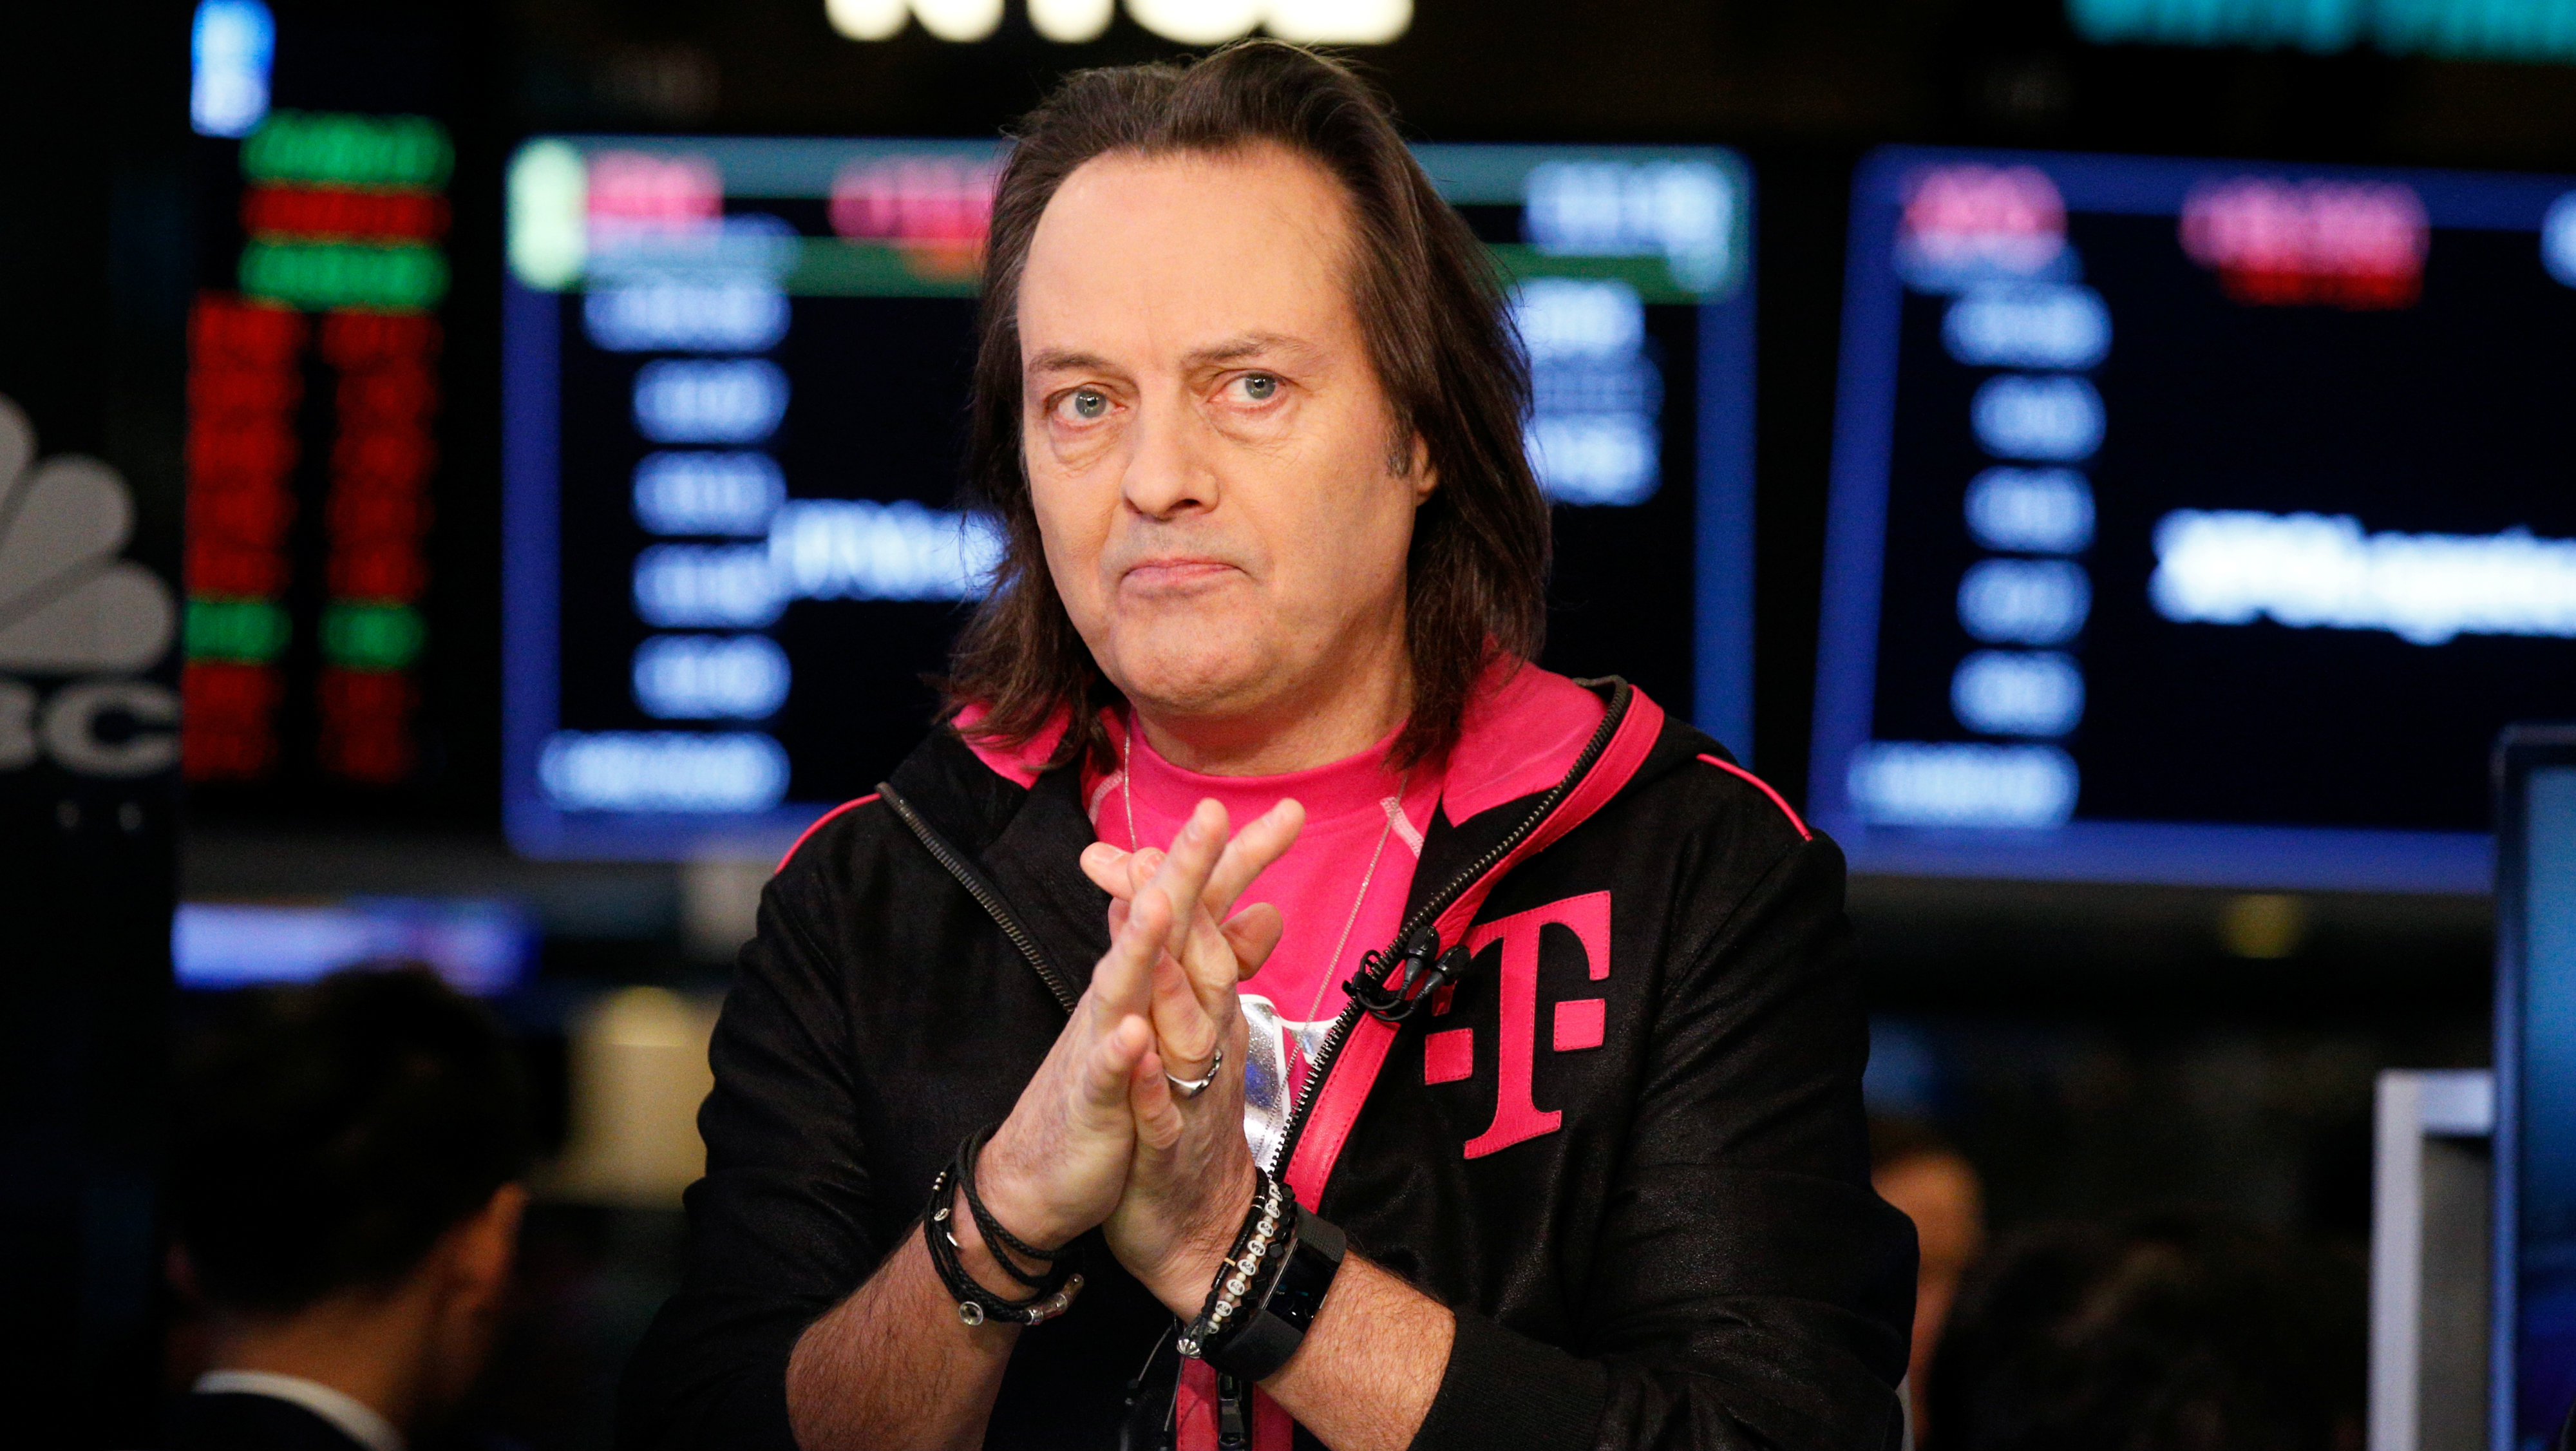 T-Mobile CEO John Legere prepares for an interview on the floor of the New York Stock Exchange in New York